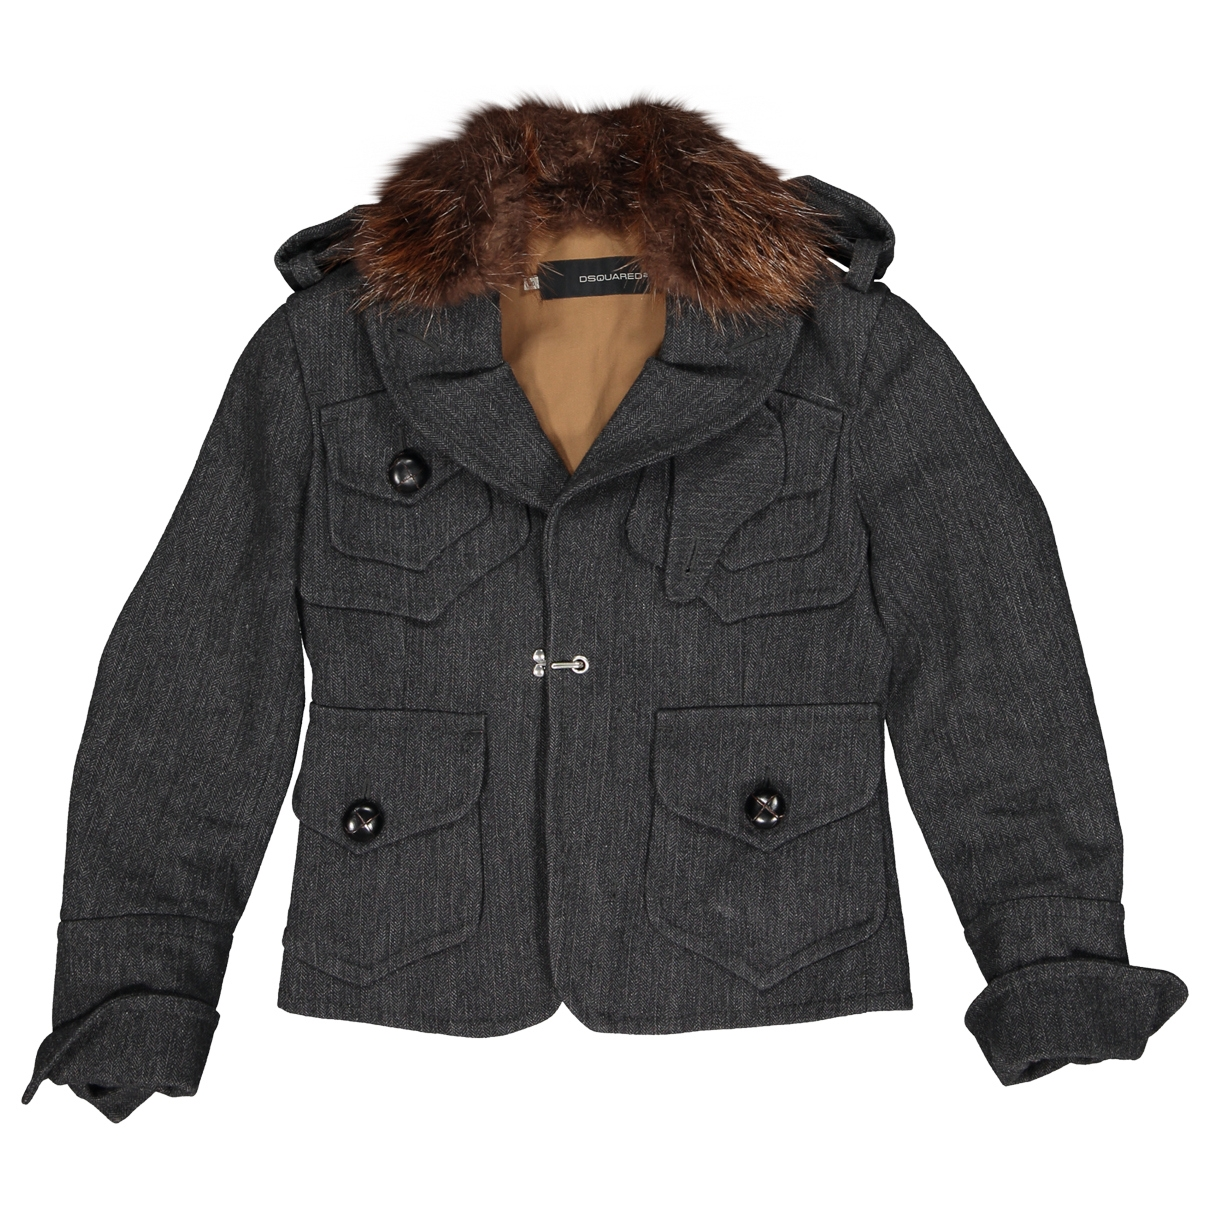 Dsquared2 \N Grey Wool jacket for Women 40 IT